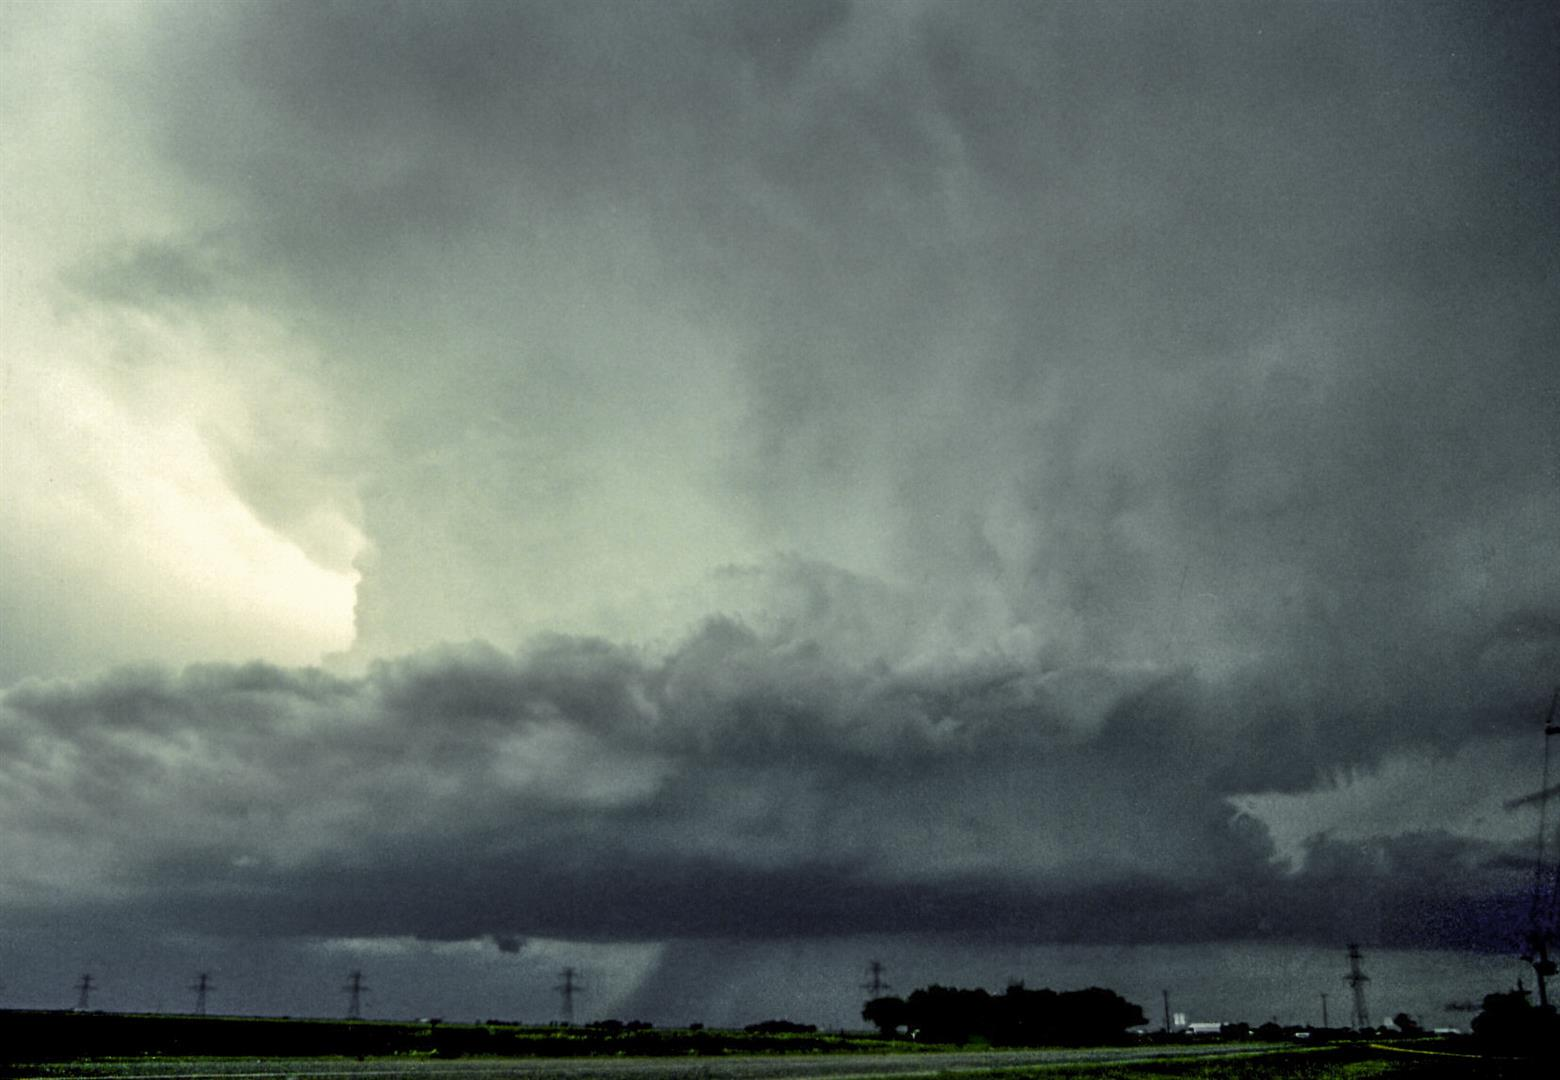 Supercell at Stamford, TX.